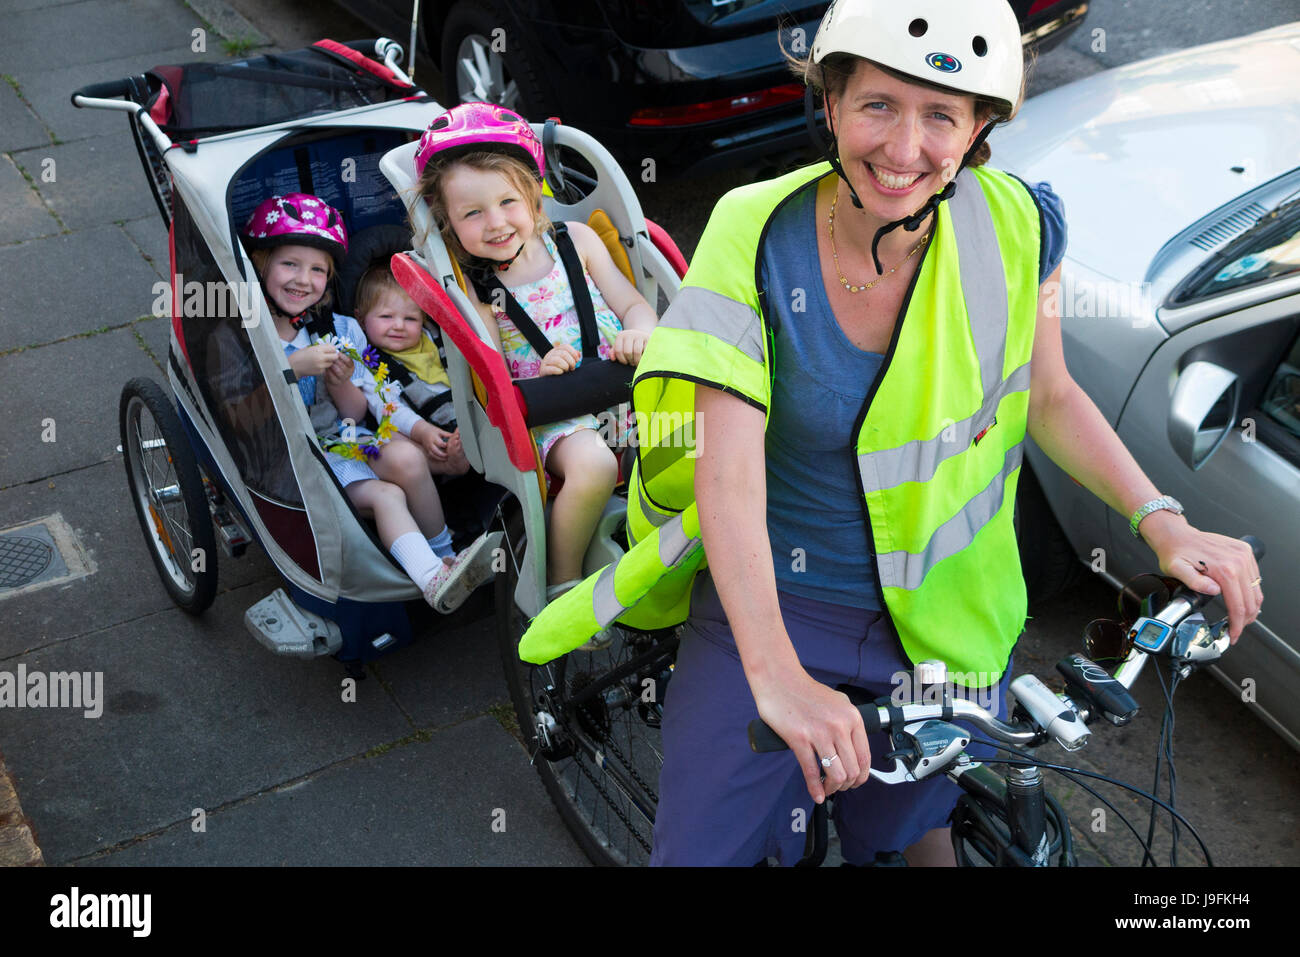 Woman cyclist on bike / bicycle with + 3 children; Co Pilot child seat with helmet & towing cycle Chariot trailer - Stock Image